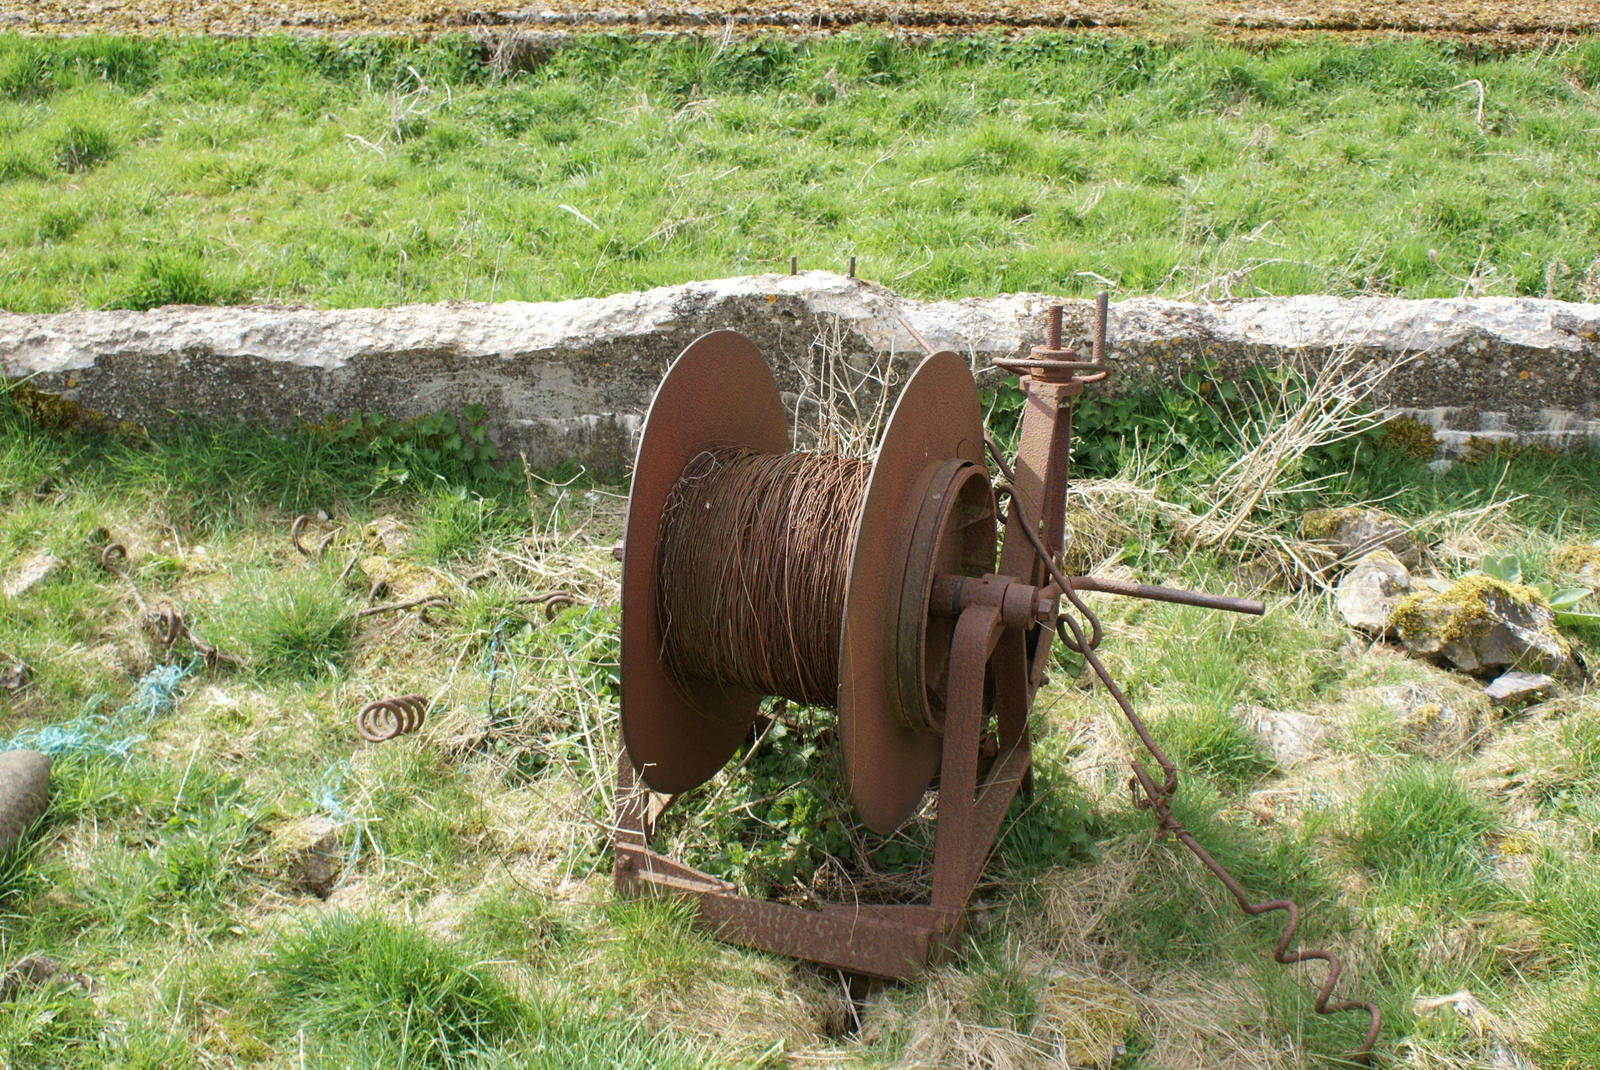 Cable Laying On Ground Art : Ww cable laying reel by sgtgrech on deviantart